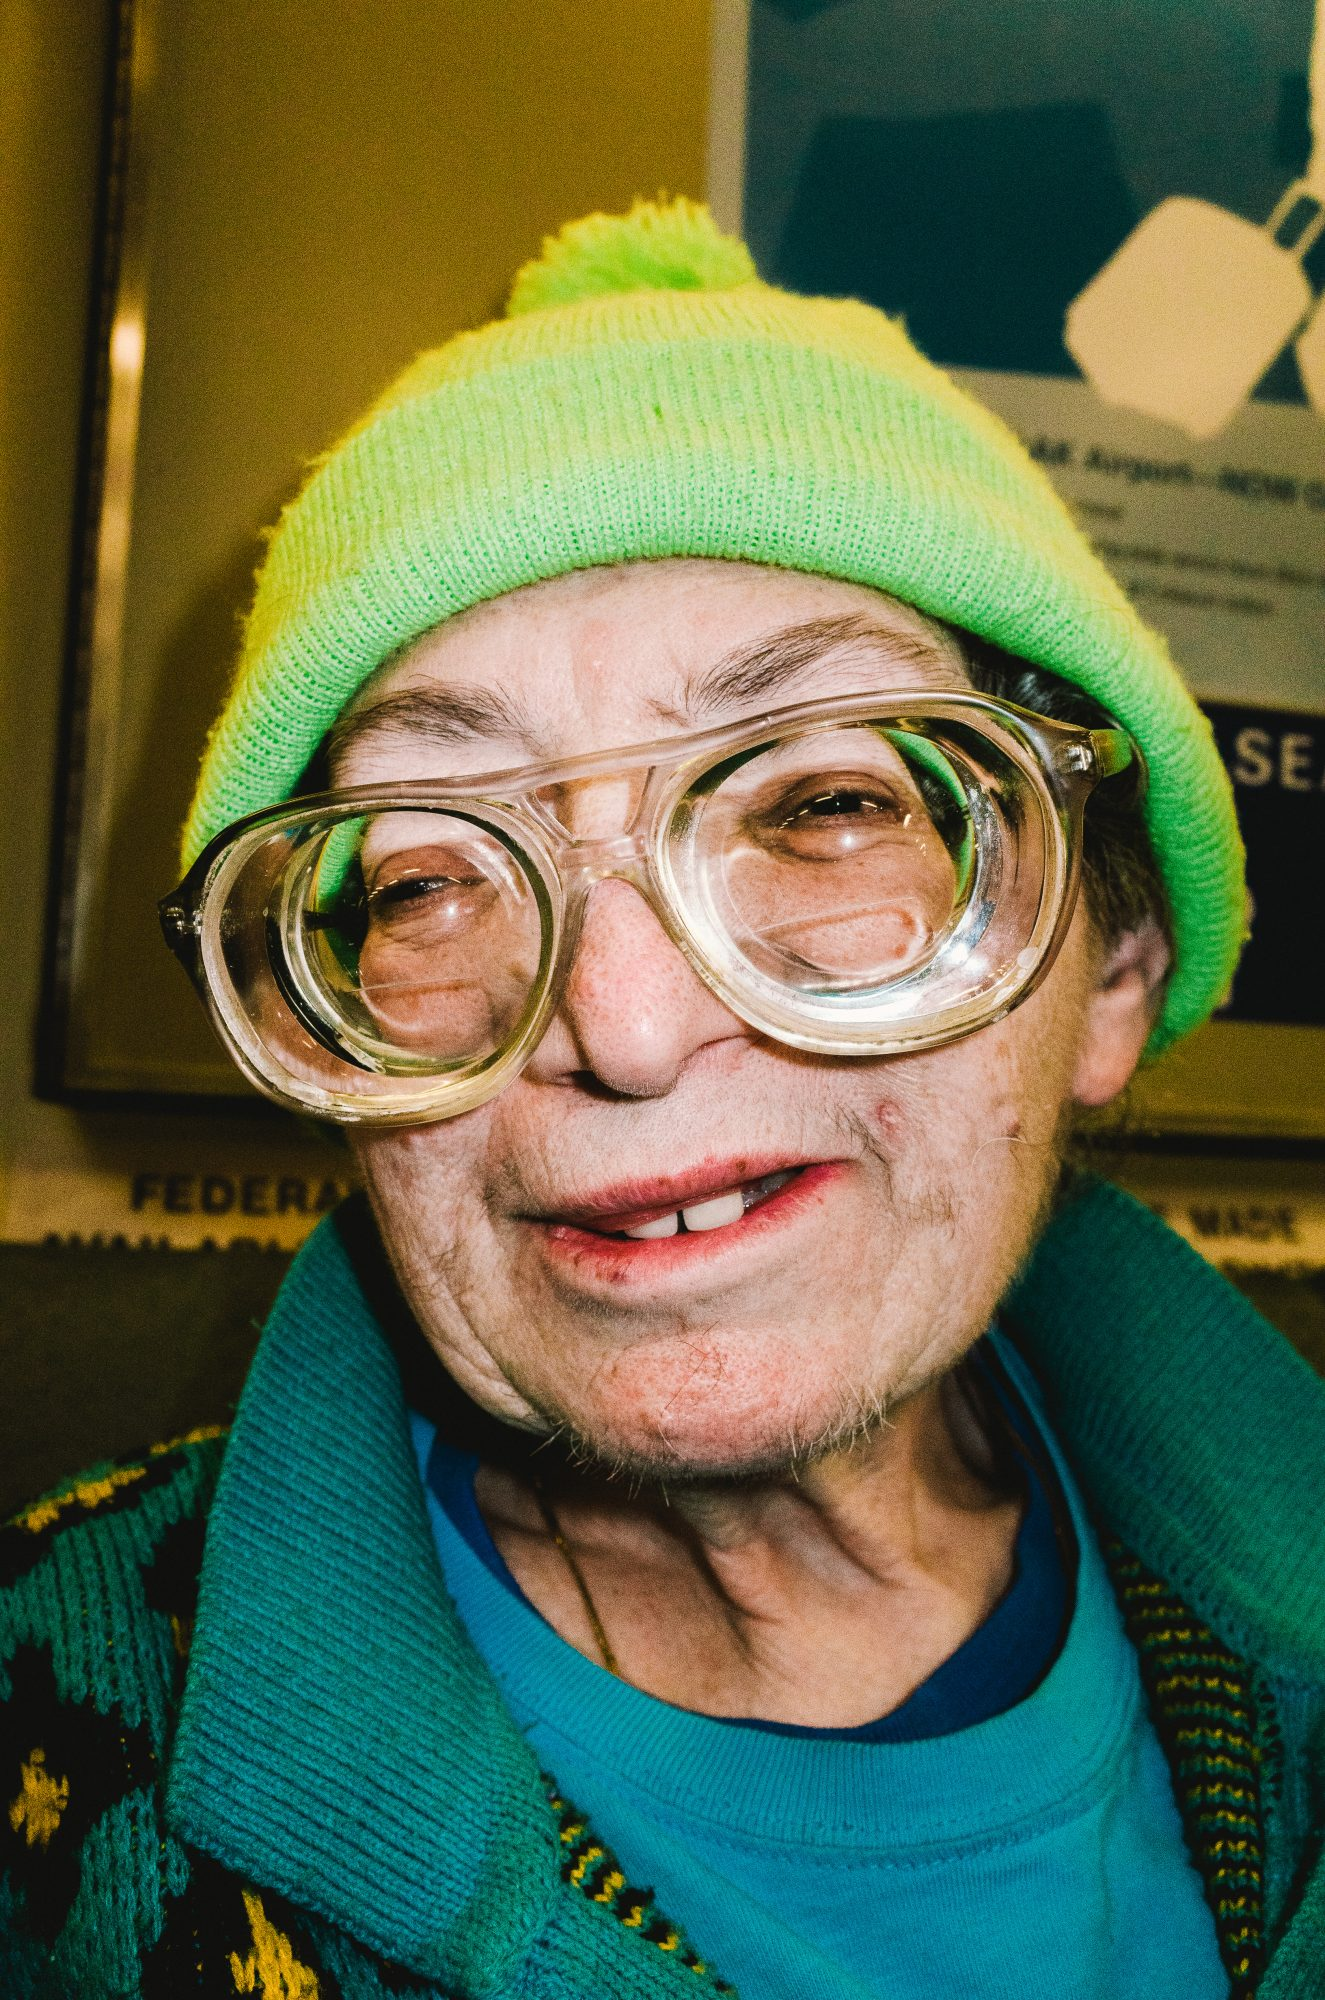 Woman with thick glasses and green hat. BART, 2015